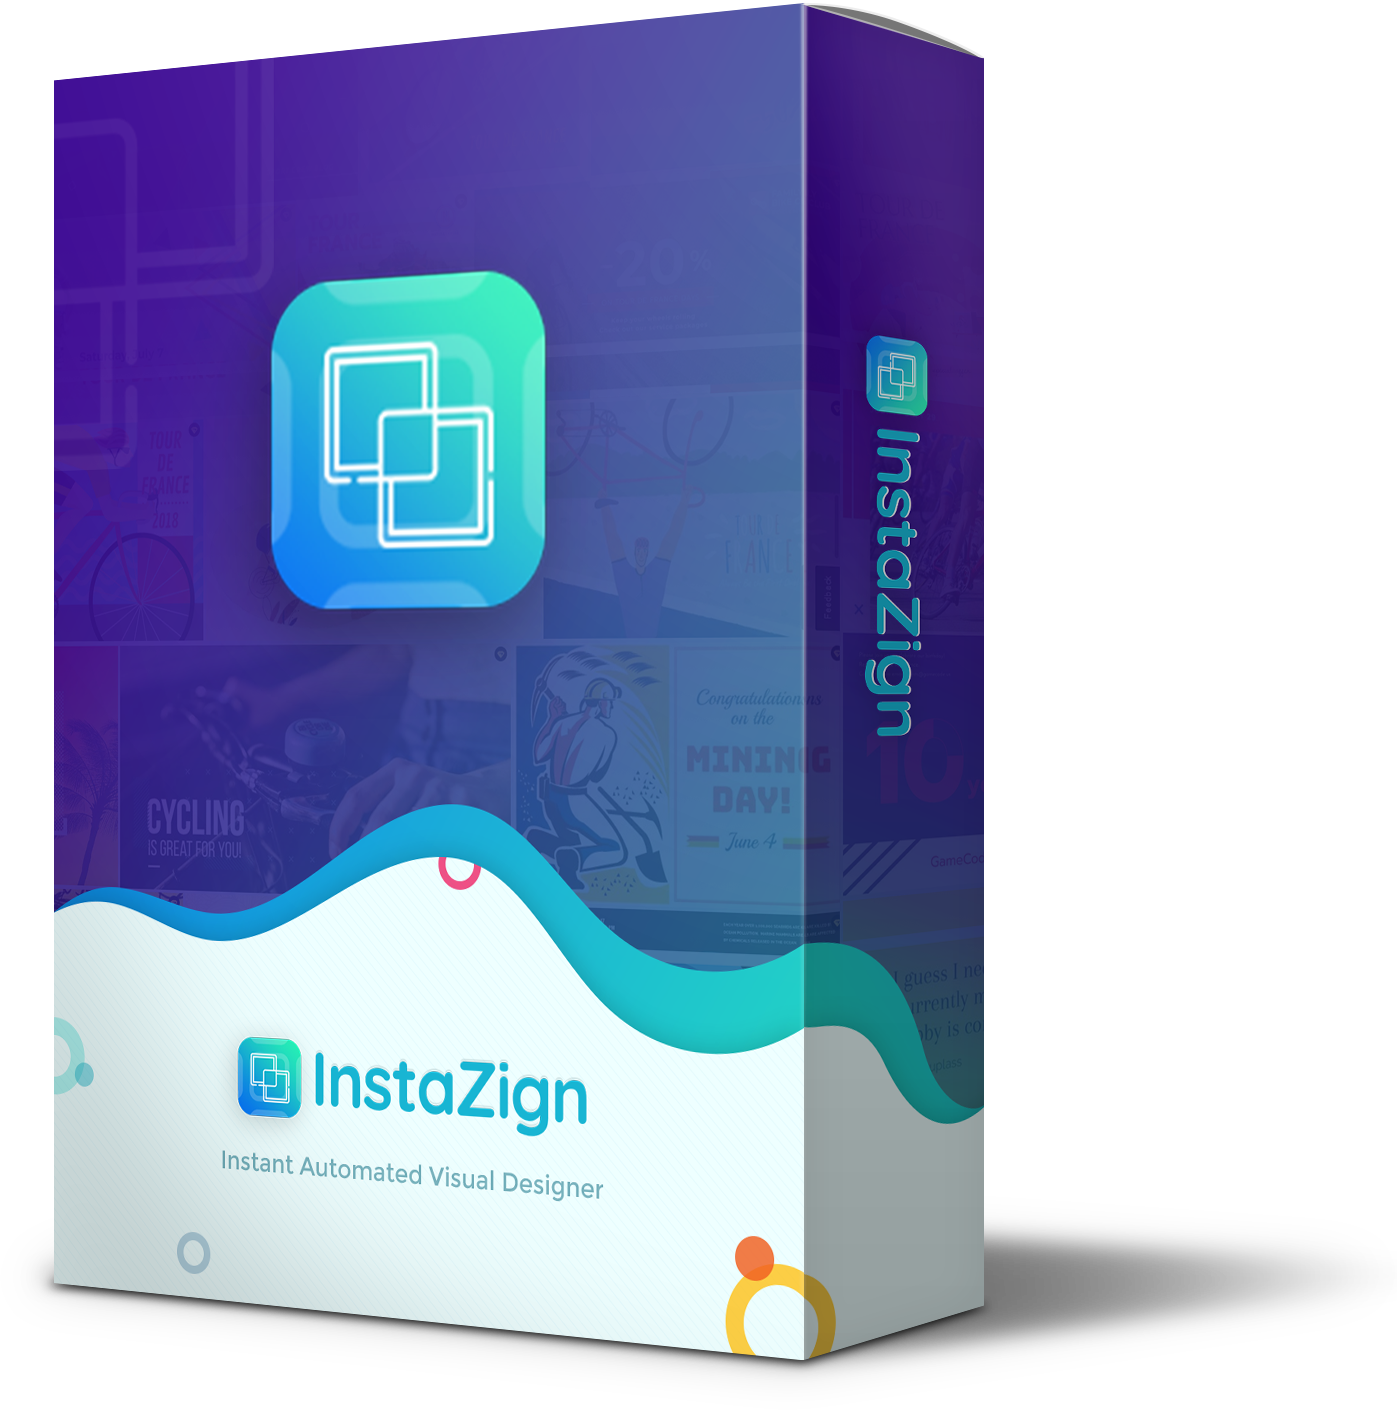 Instazign Review: *Read Here Before Buying this Product* 3